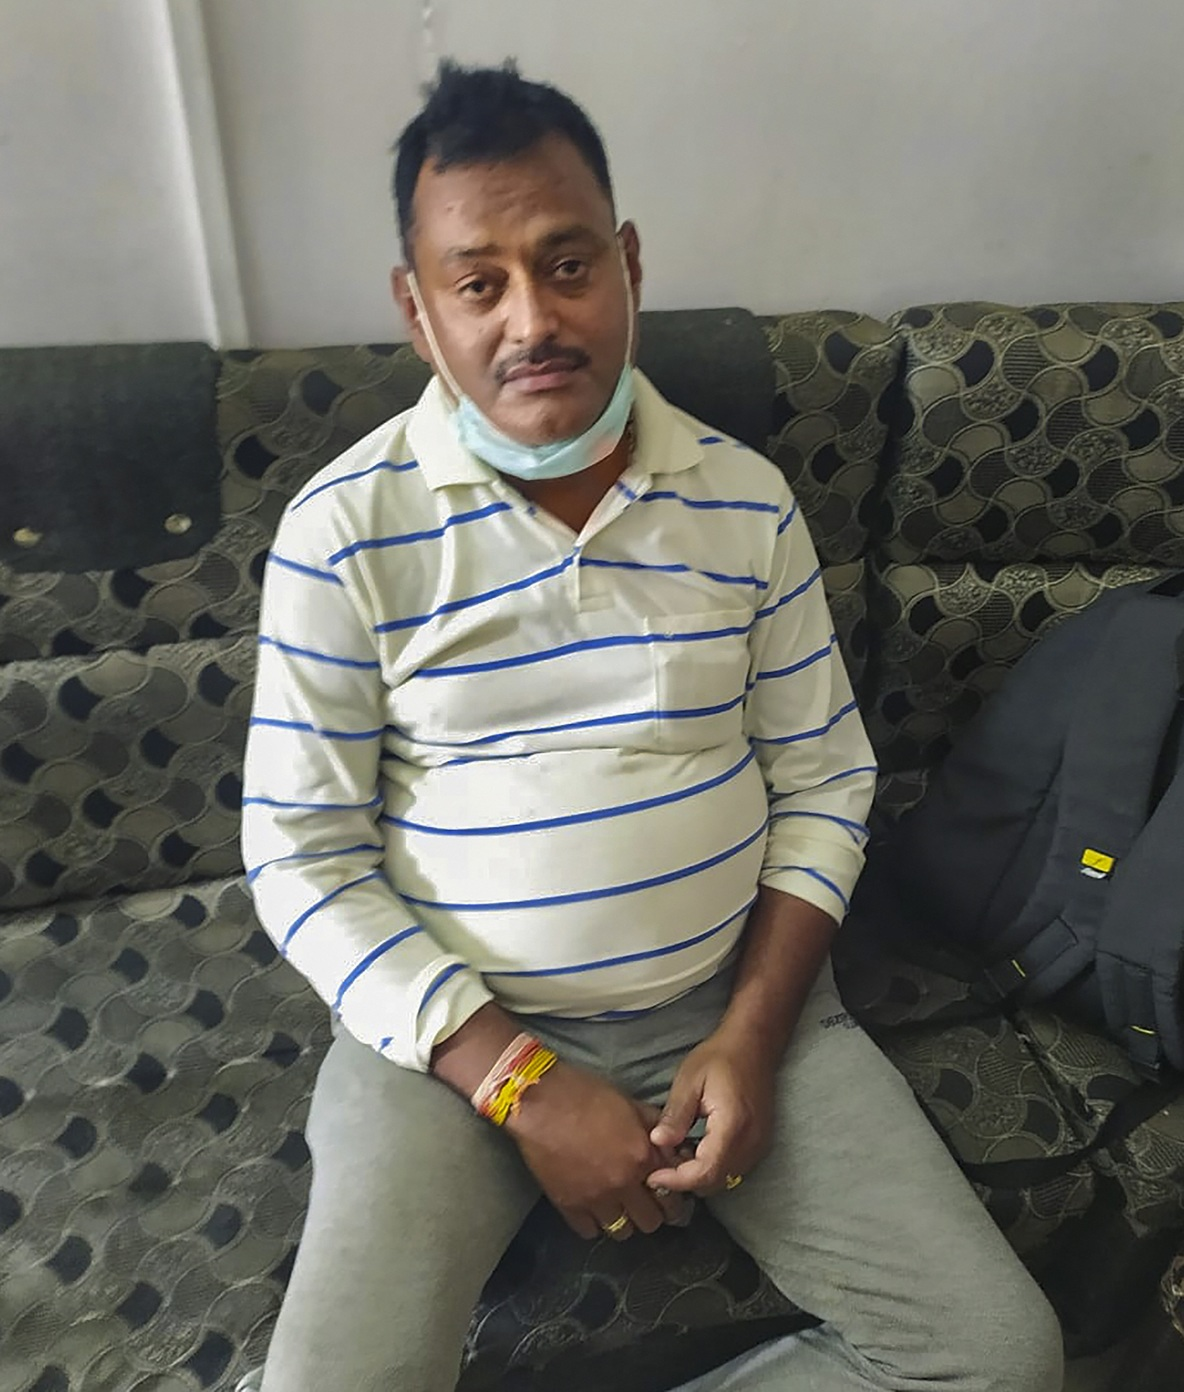 Gangster Vikas Dubey, the main accused in killing of eight policemen in the Kanpur encounter last week, has been arrested from Ujjain